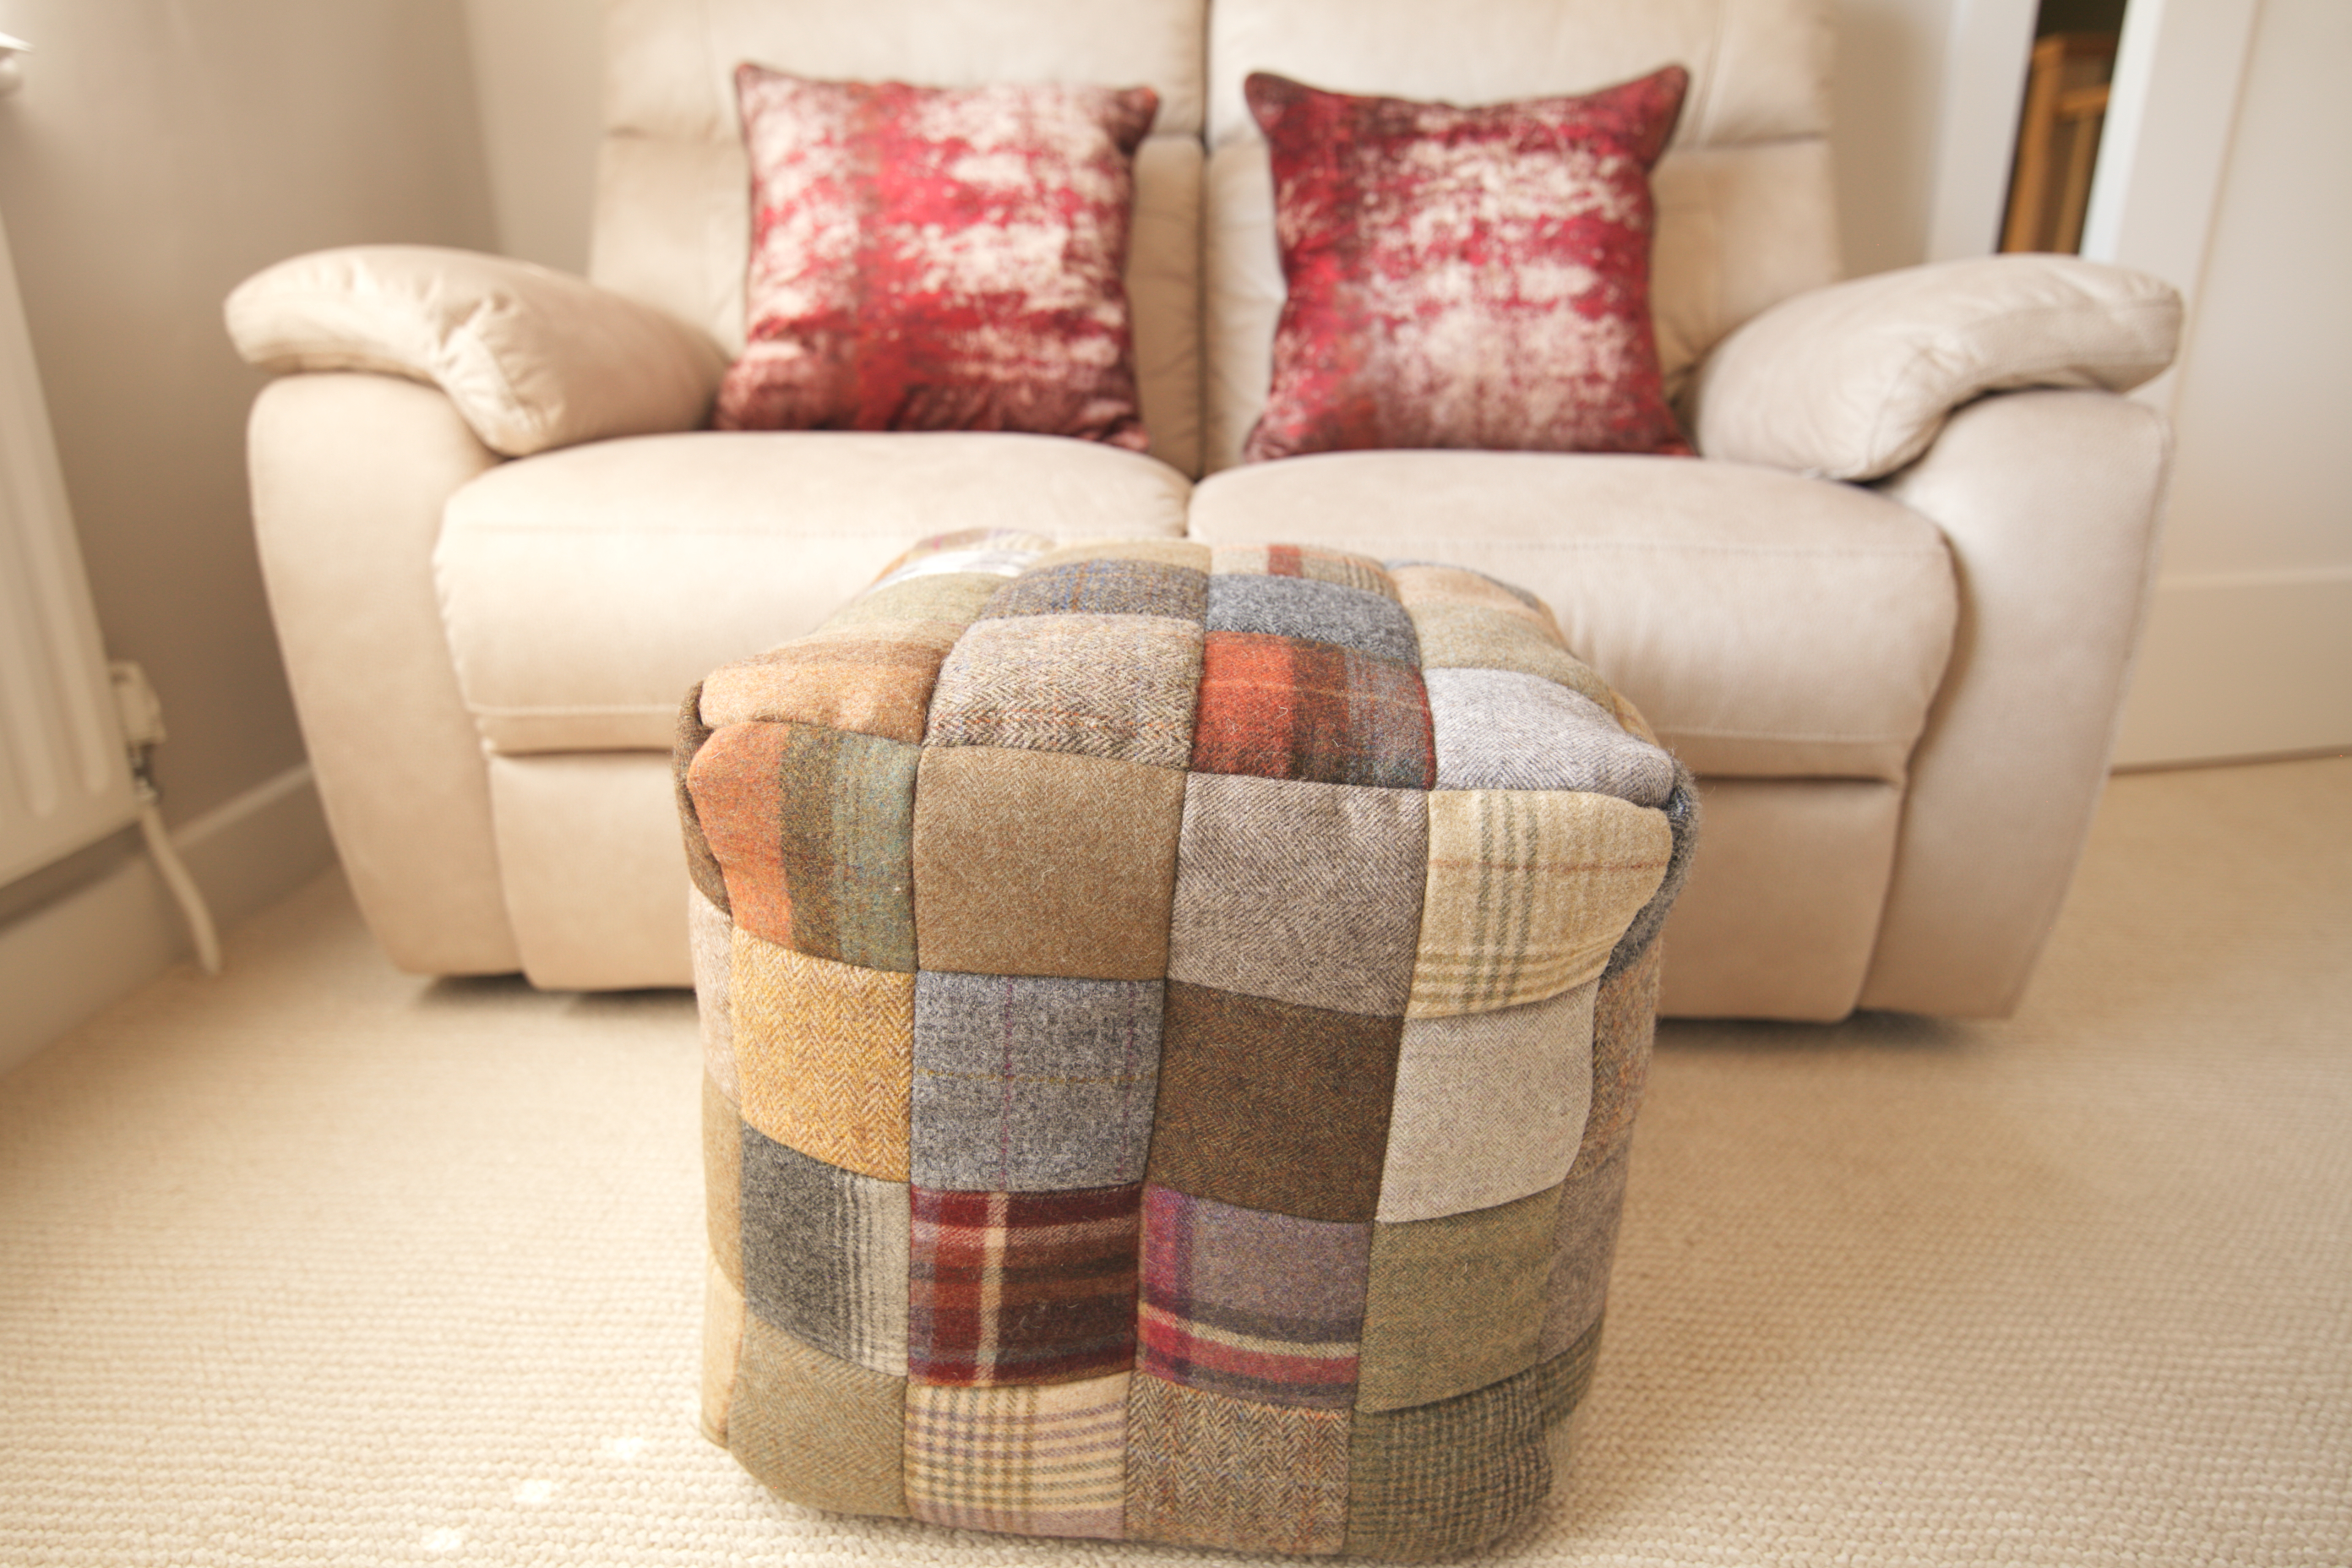 Bespoke footstool with B&S recliner